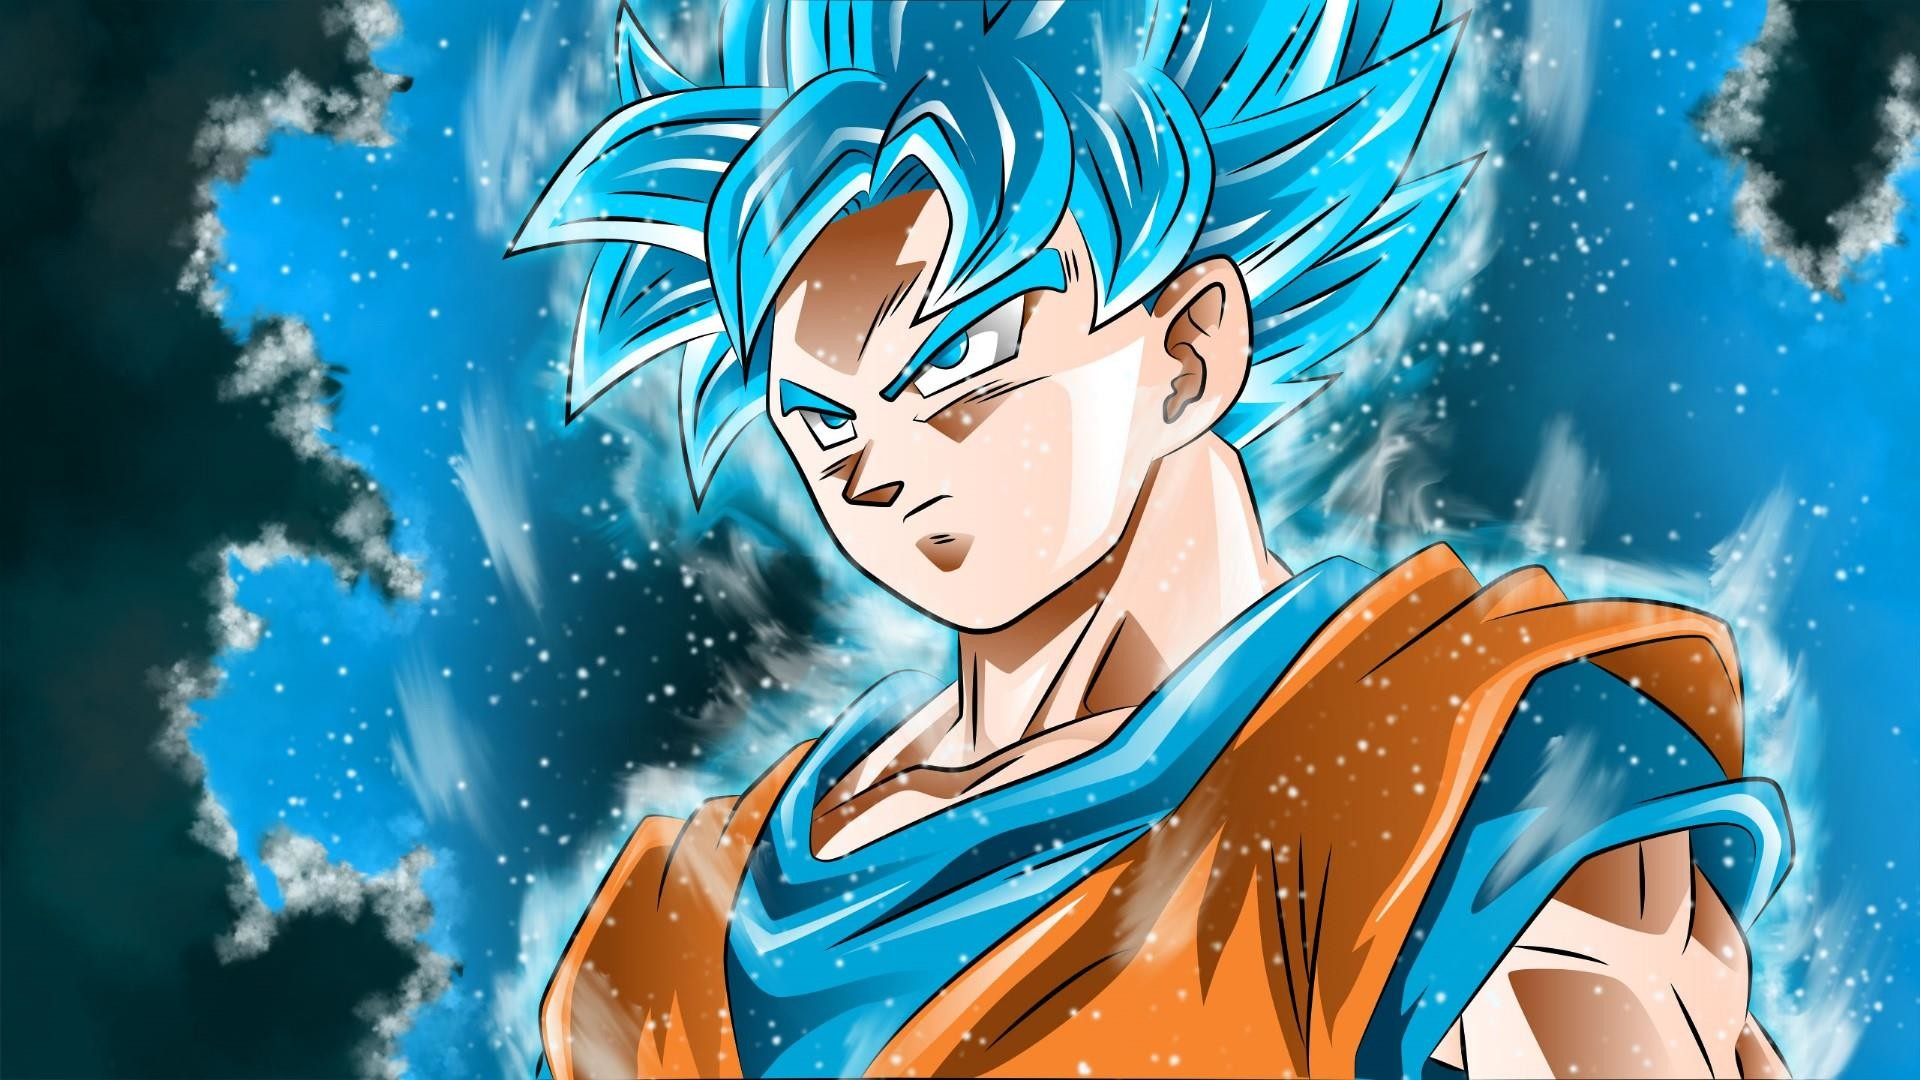 Goku Blue Wallpapers Wallpapertag